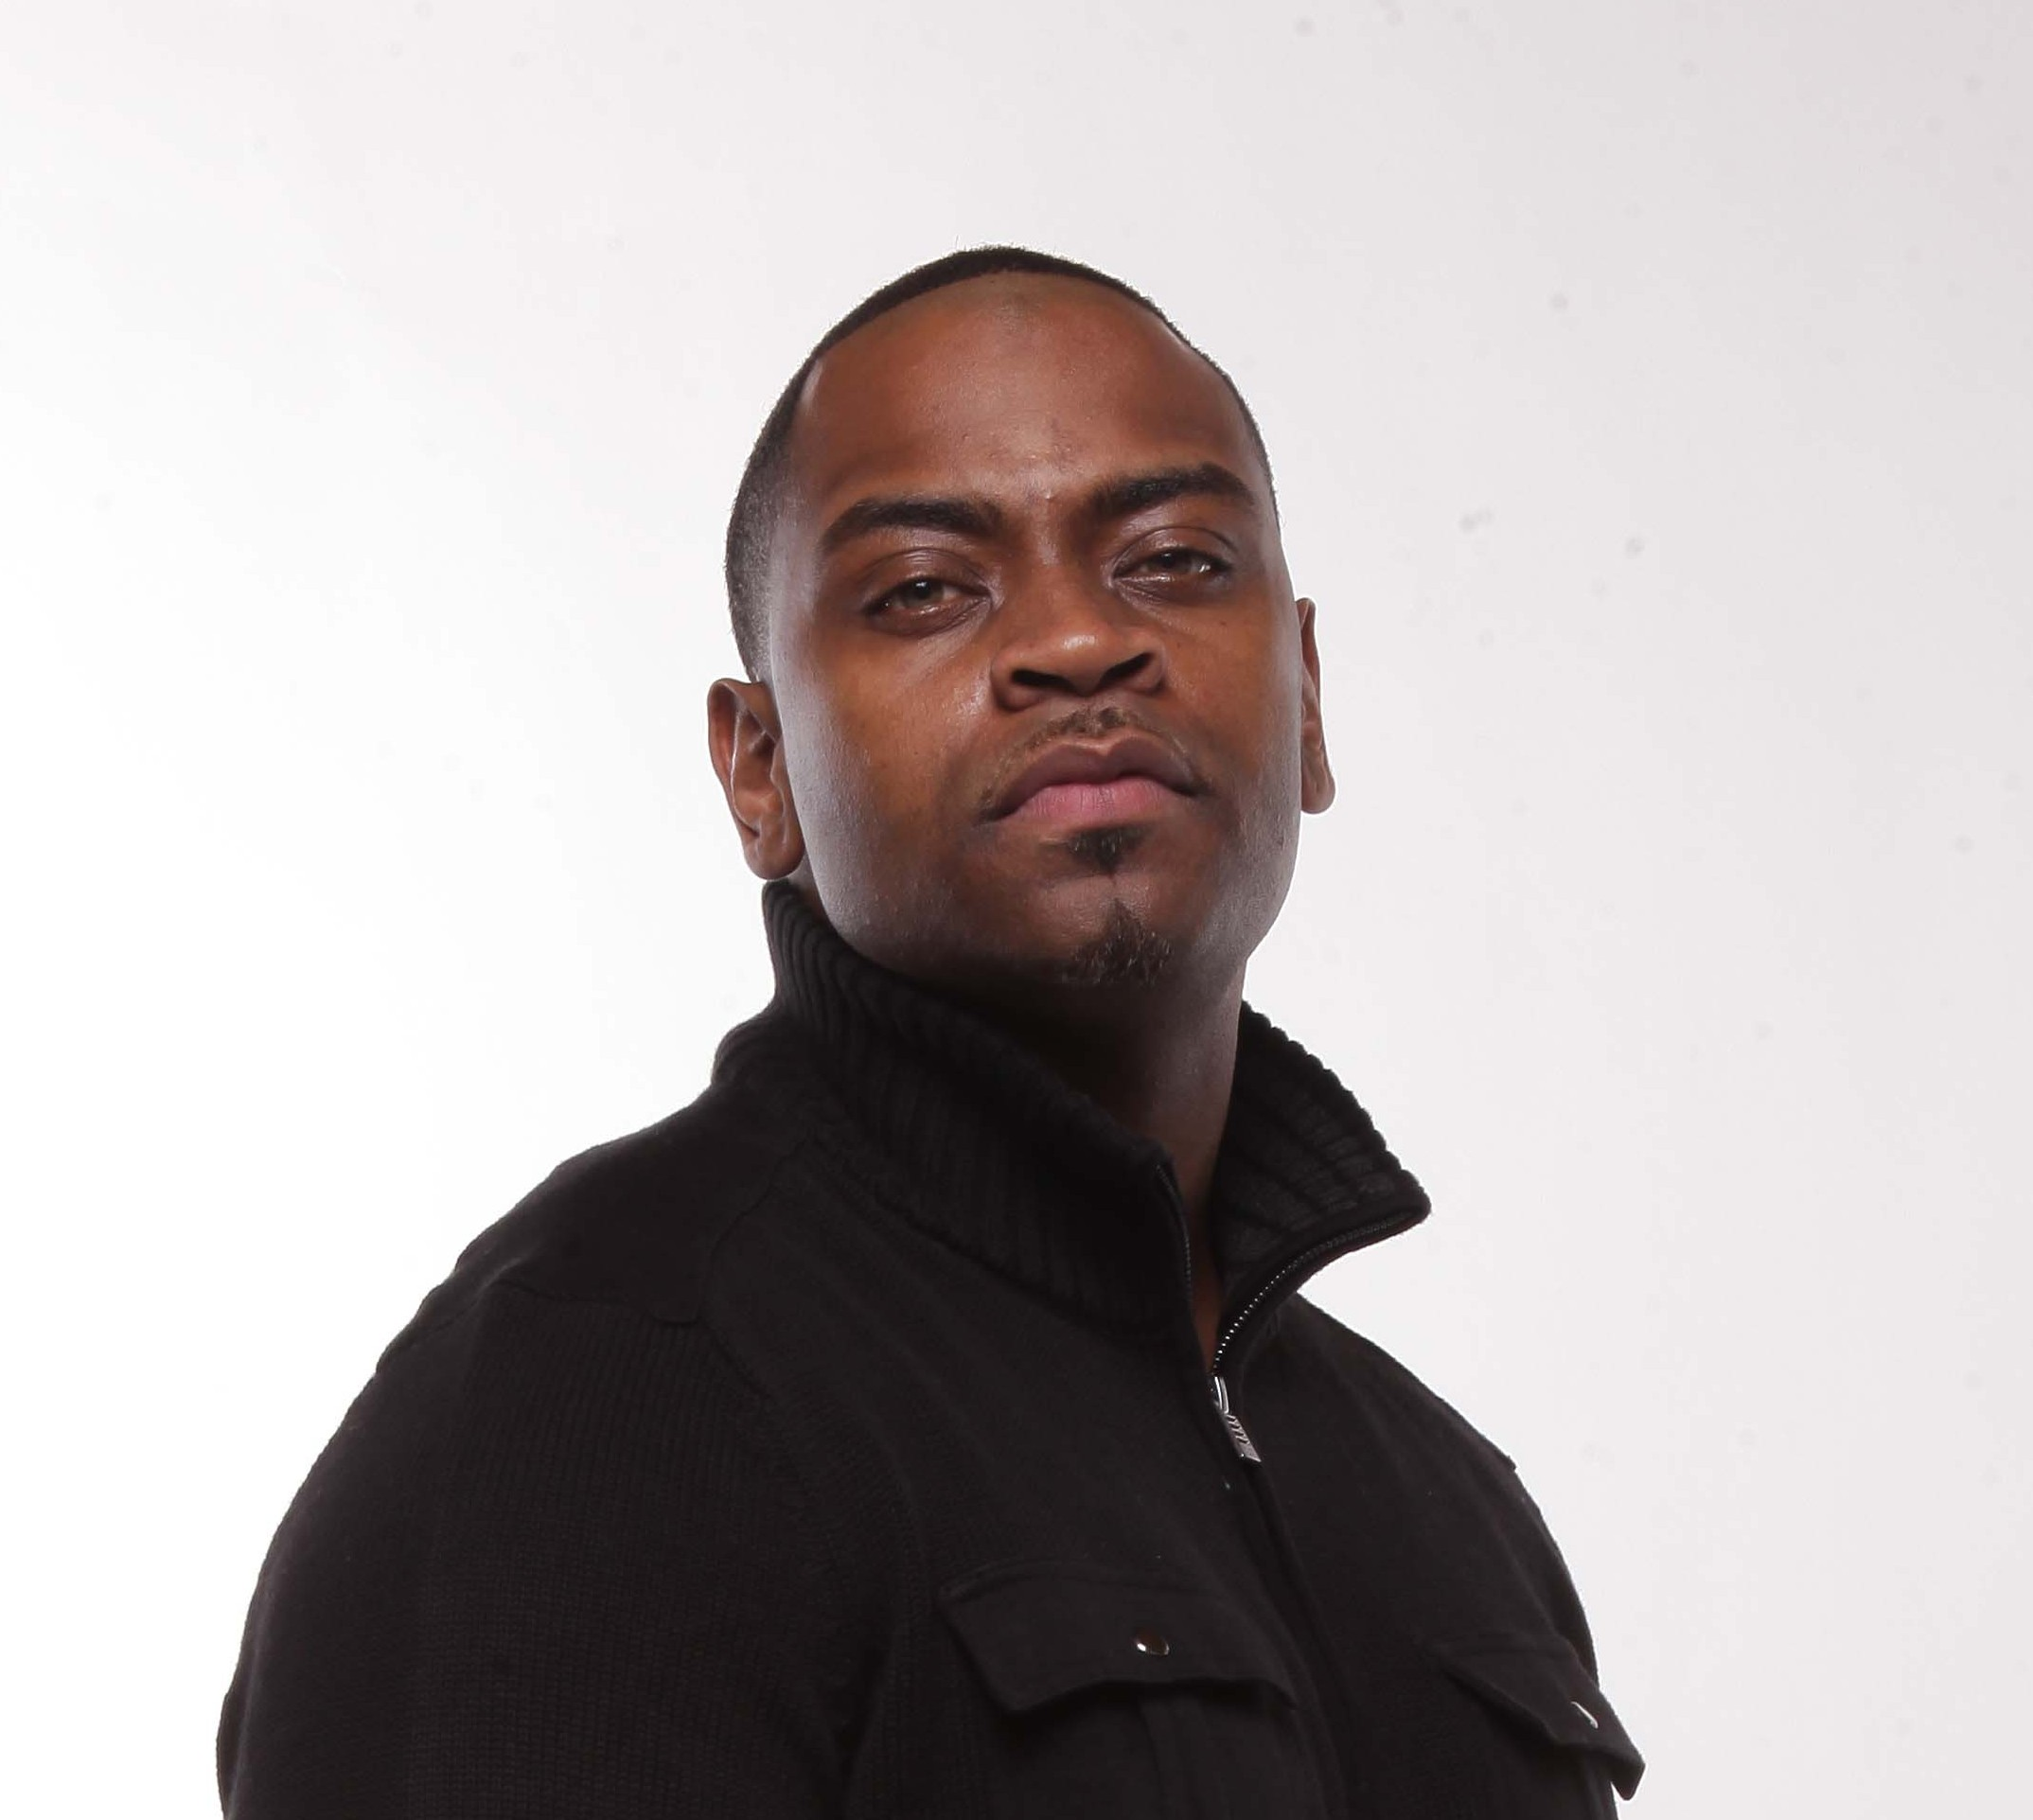 """INTERVIEW: JP ONE on """"Win or Lose,"""" Detroit Hip Hop + MORE (EXCLUSIVE)"""